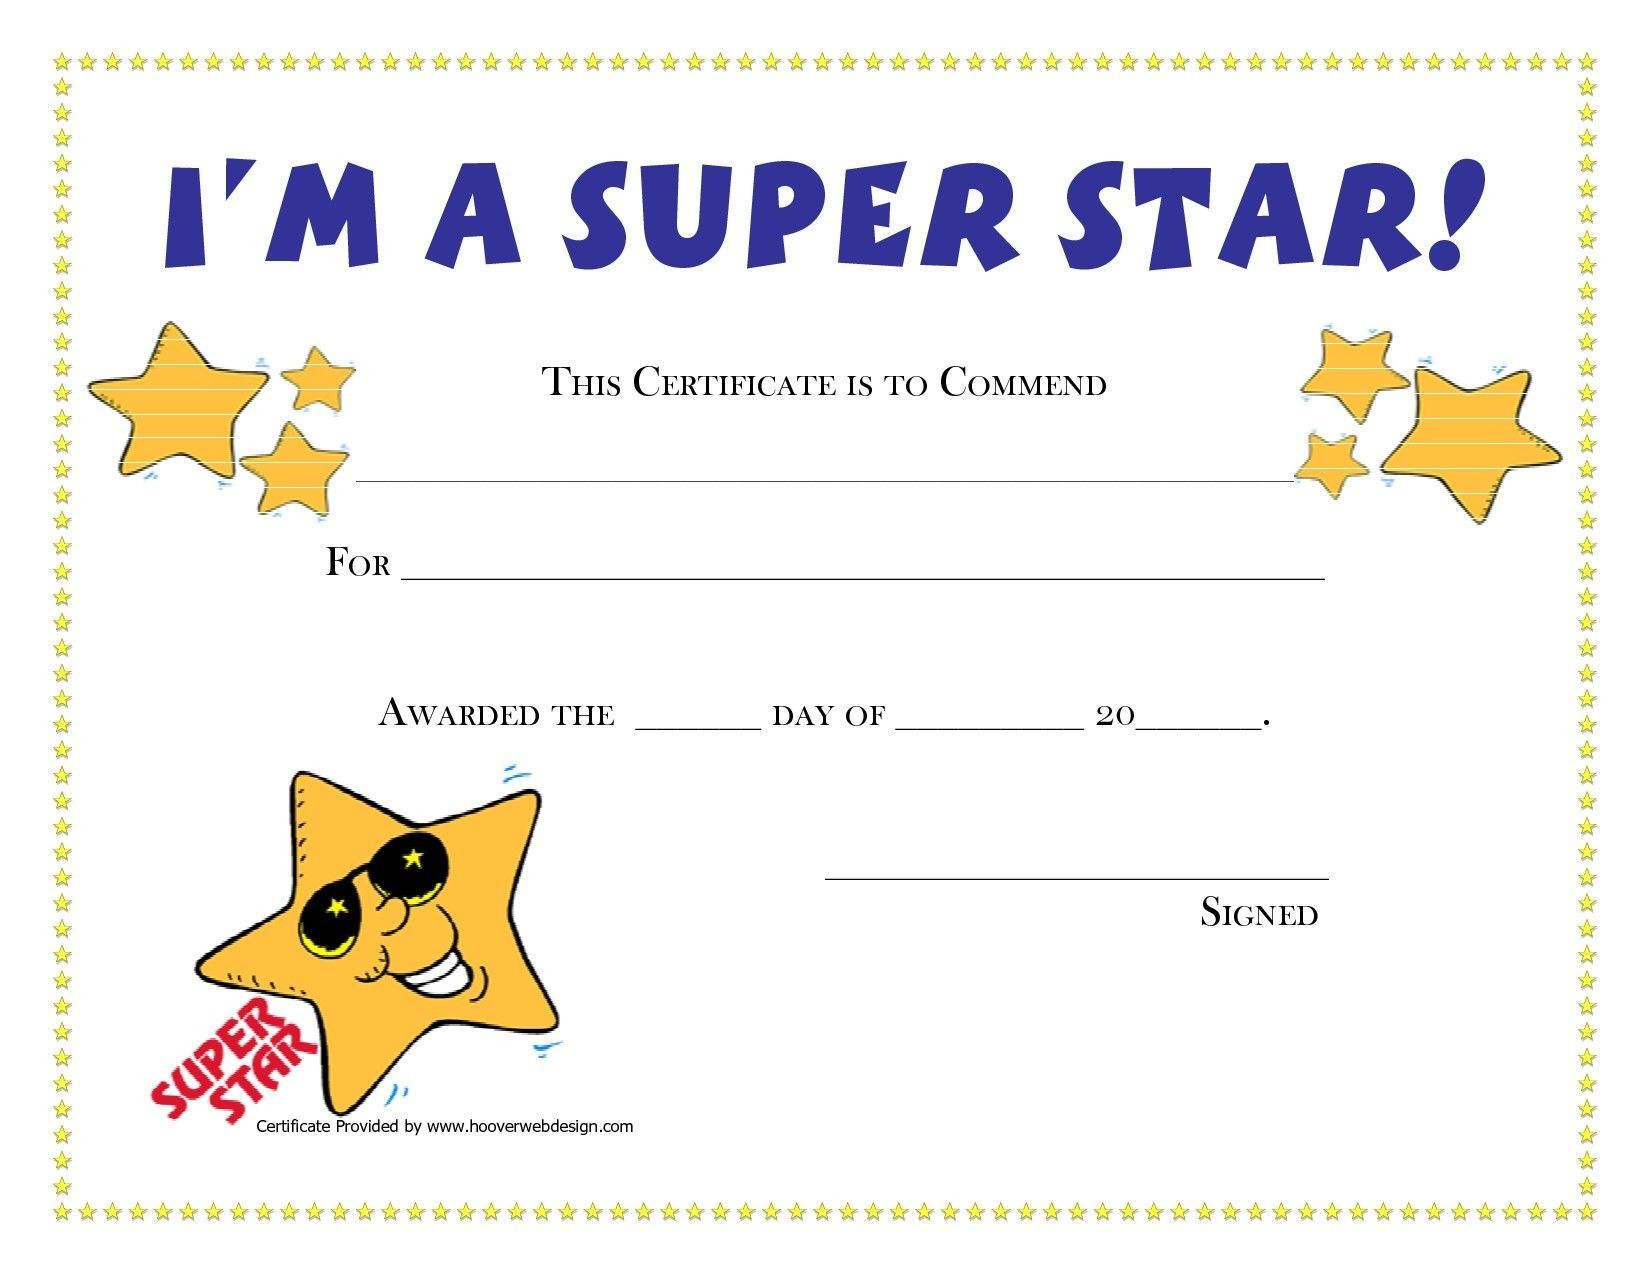 Free Printable Childrens Certificates Templates - Reeviewer.co - Free Printable Children's Certificates Templates